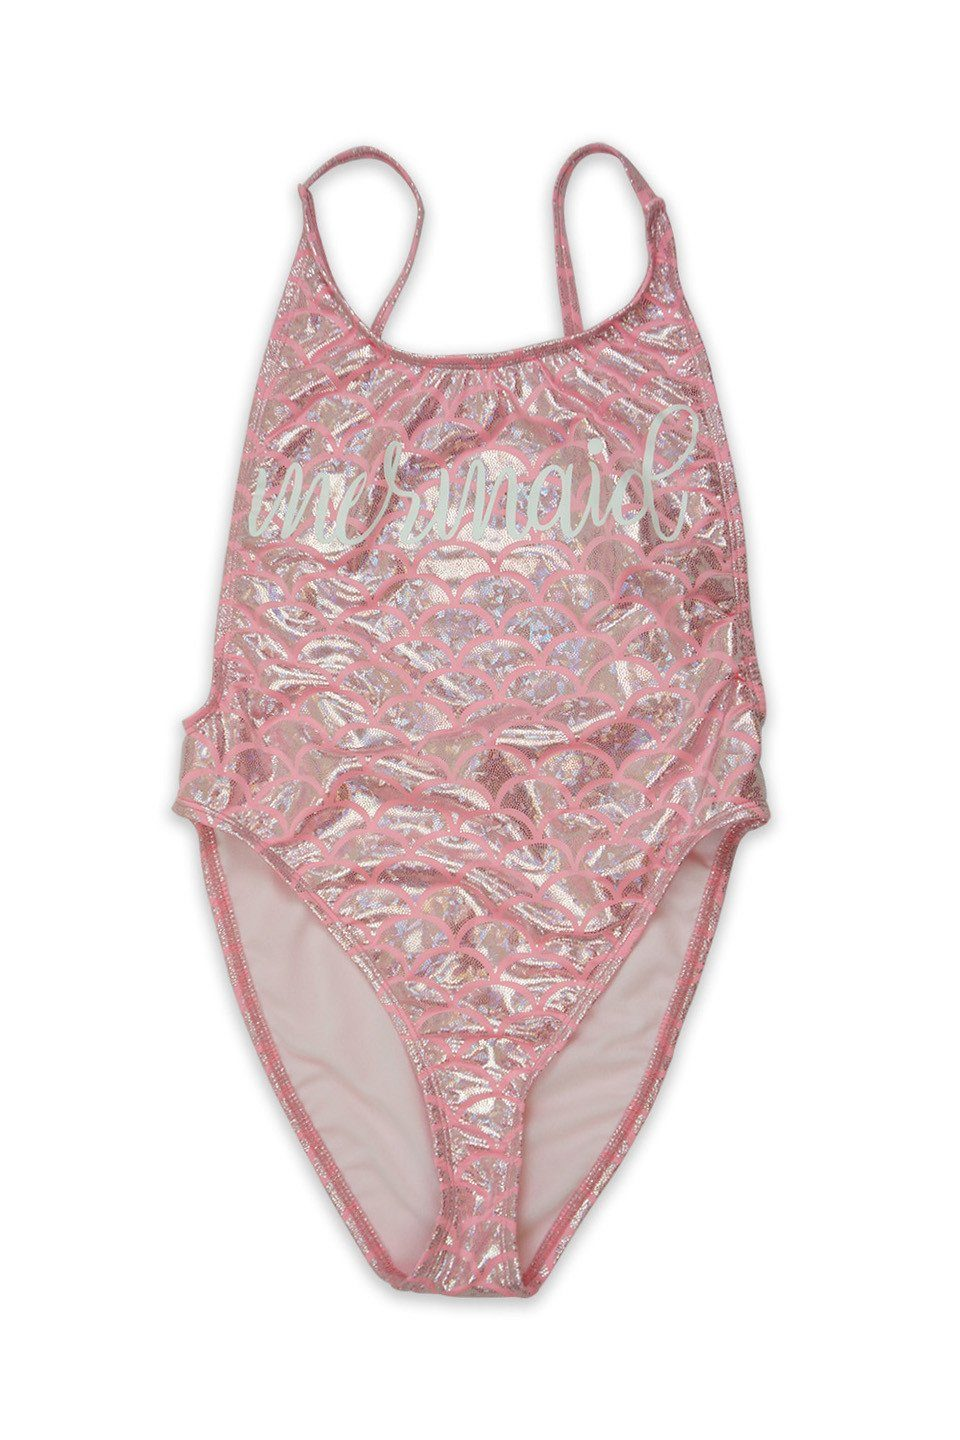 Pink Scales Mermaid High Cut Vintage Swimsuit Front - Dippin' Daisy's Swimwear